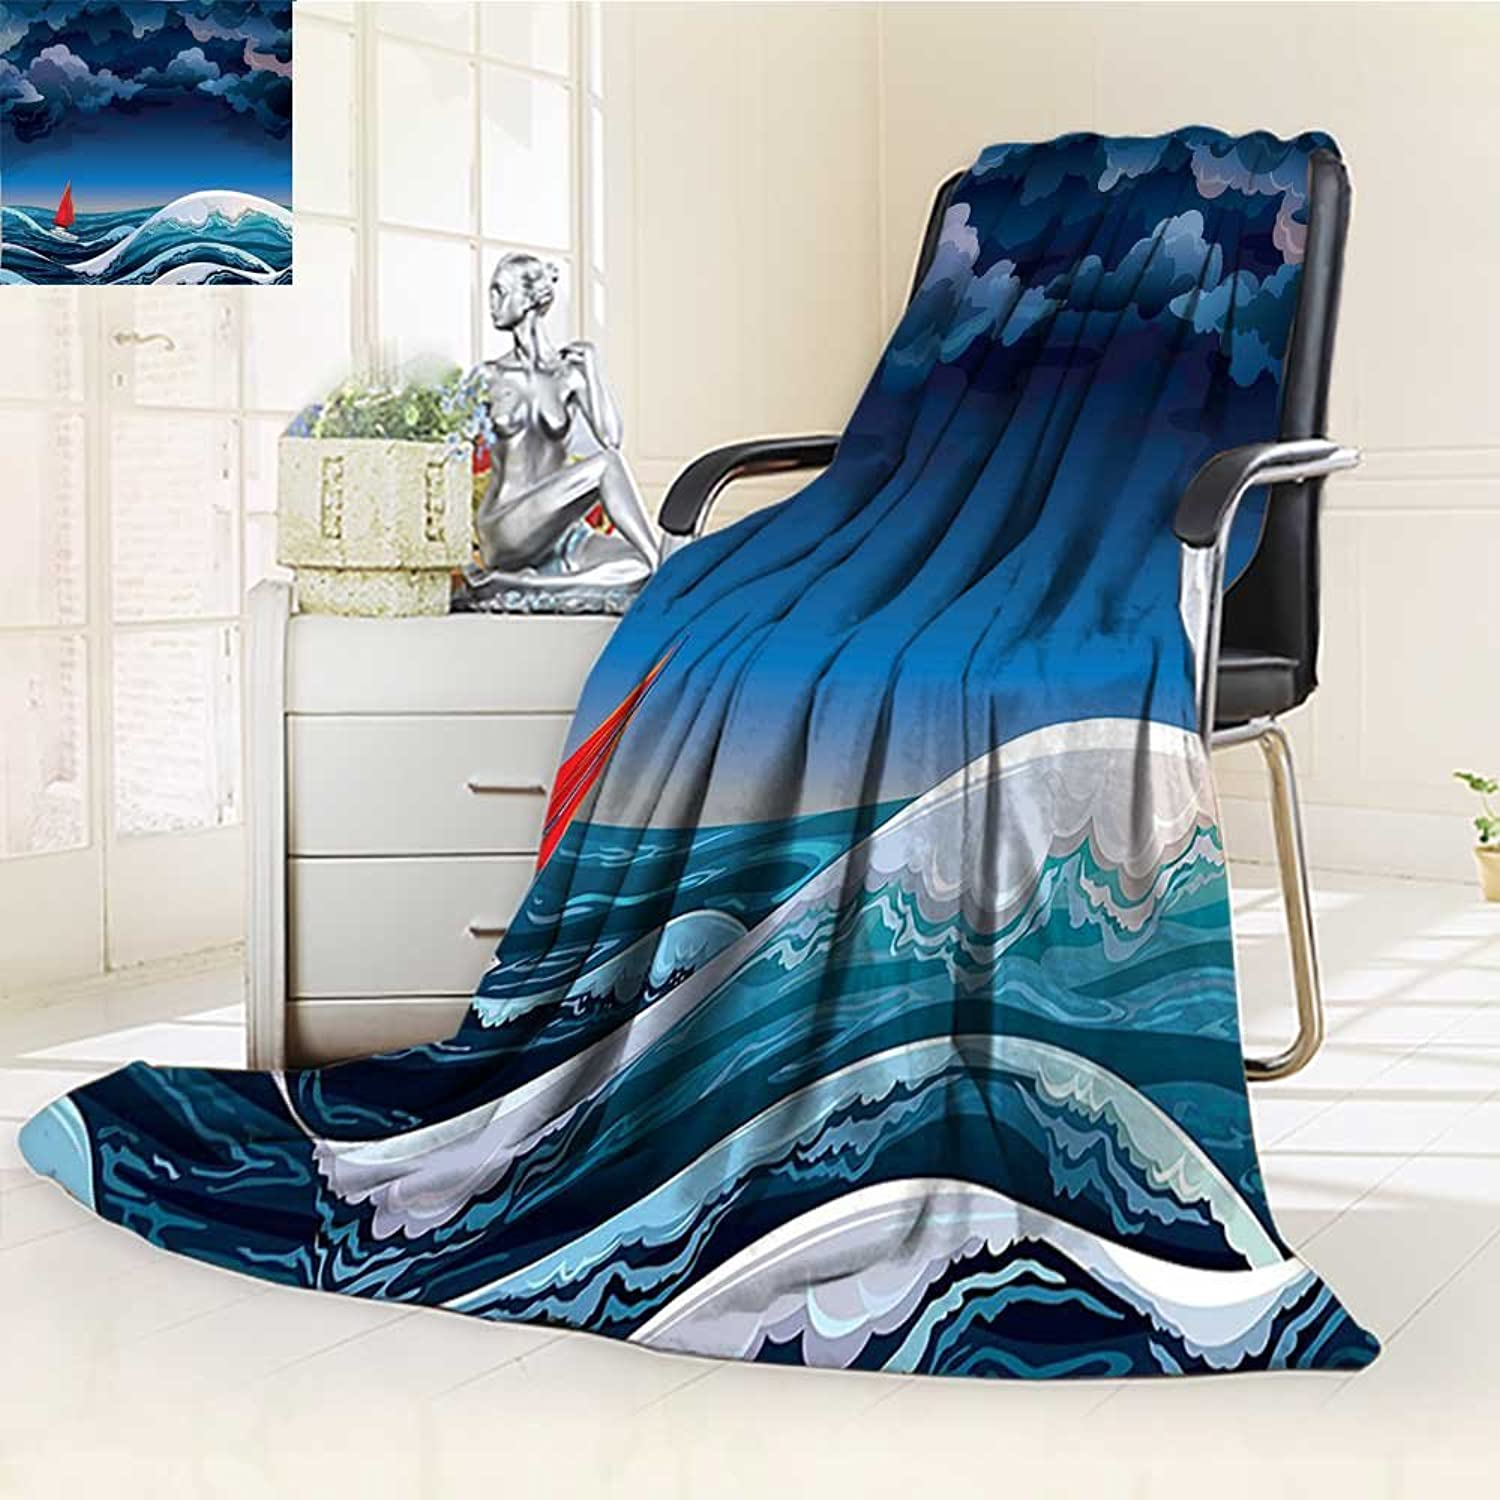 AmaPark Digital Printing Blanket Sailboat Night Seascape with Sailboat and Stormy Dramatic Sky Summer Quilt Comforter